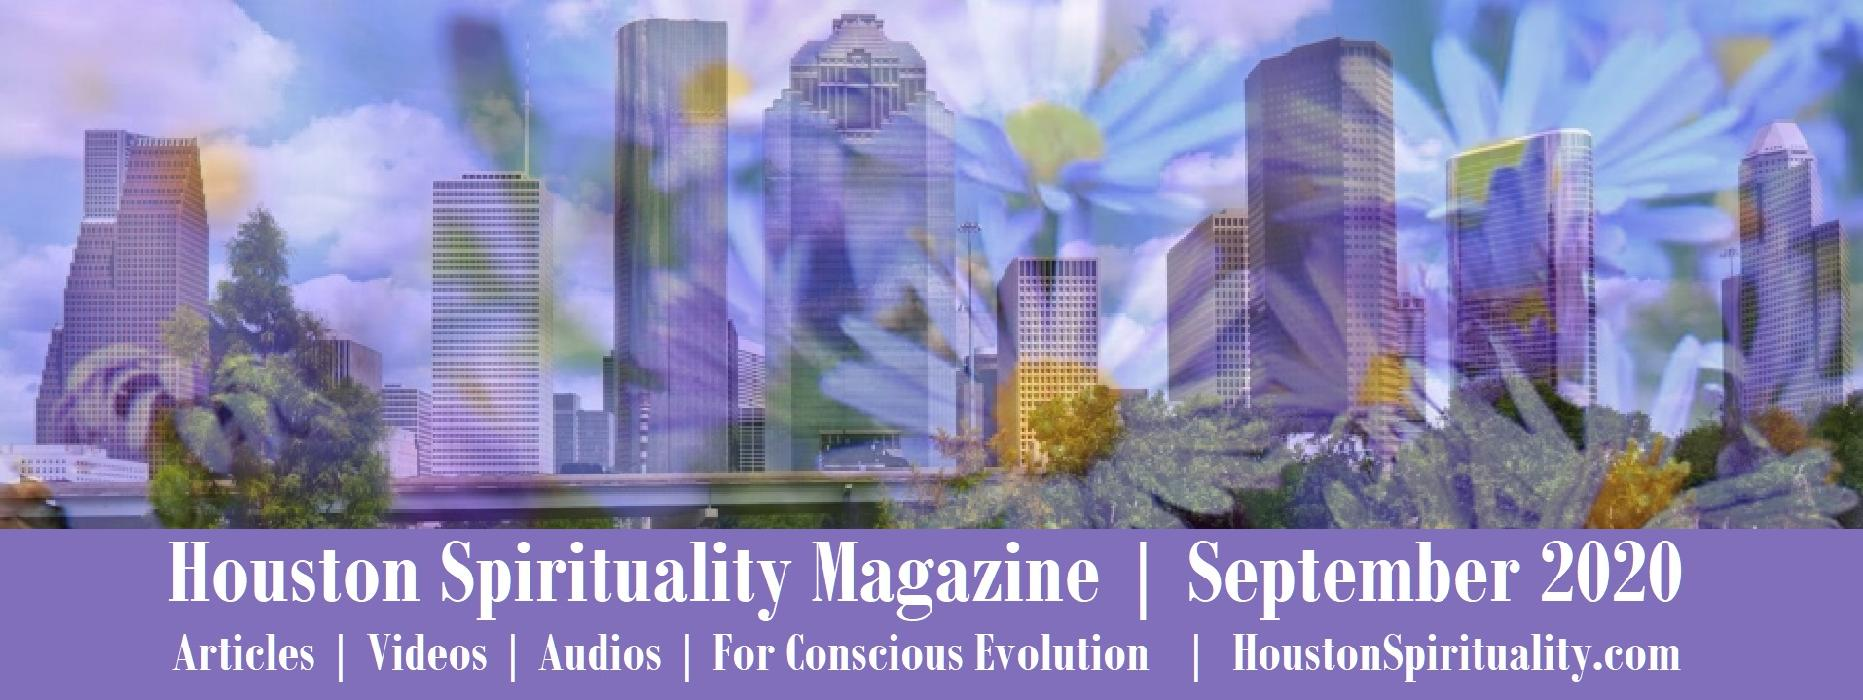 SEPTEMBER Houston Spirituality Magazine articles link